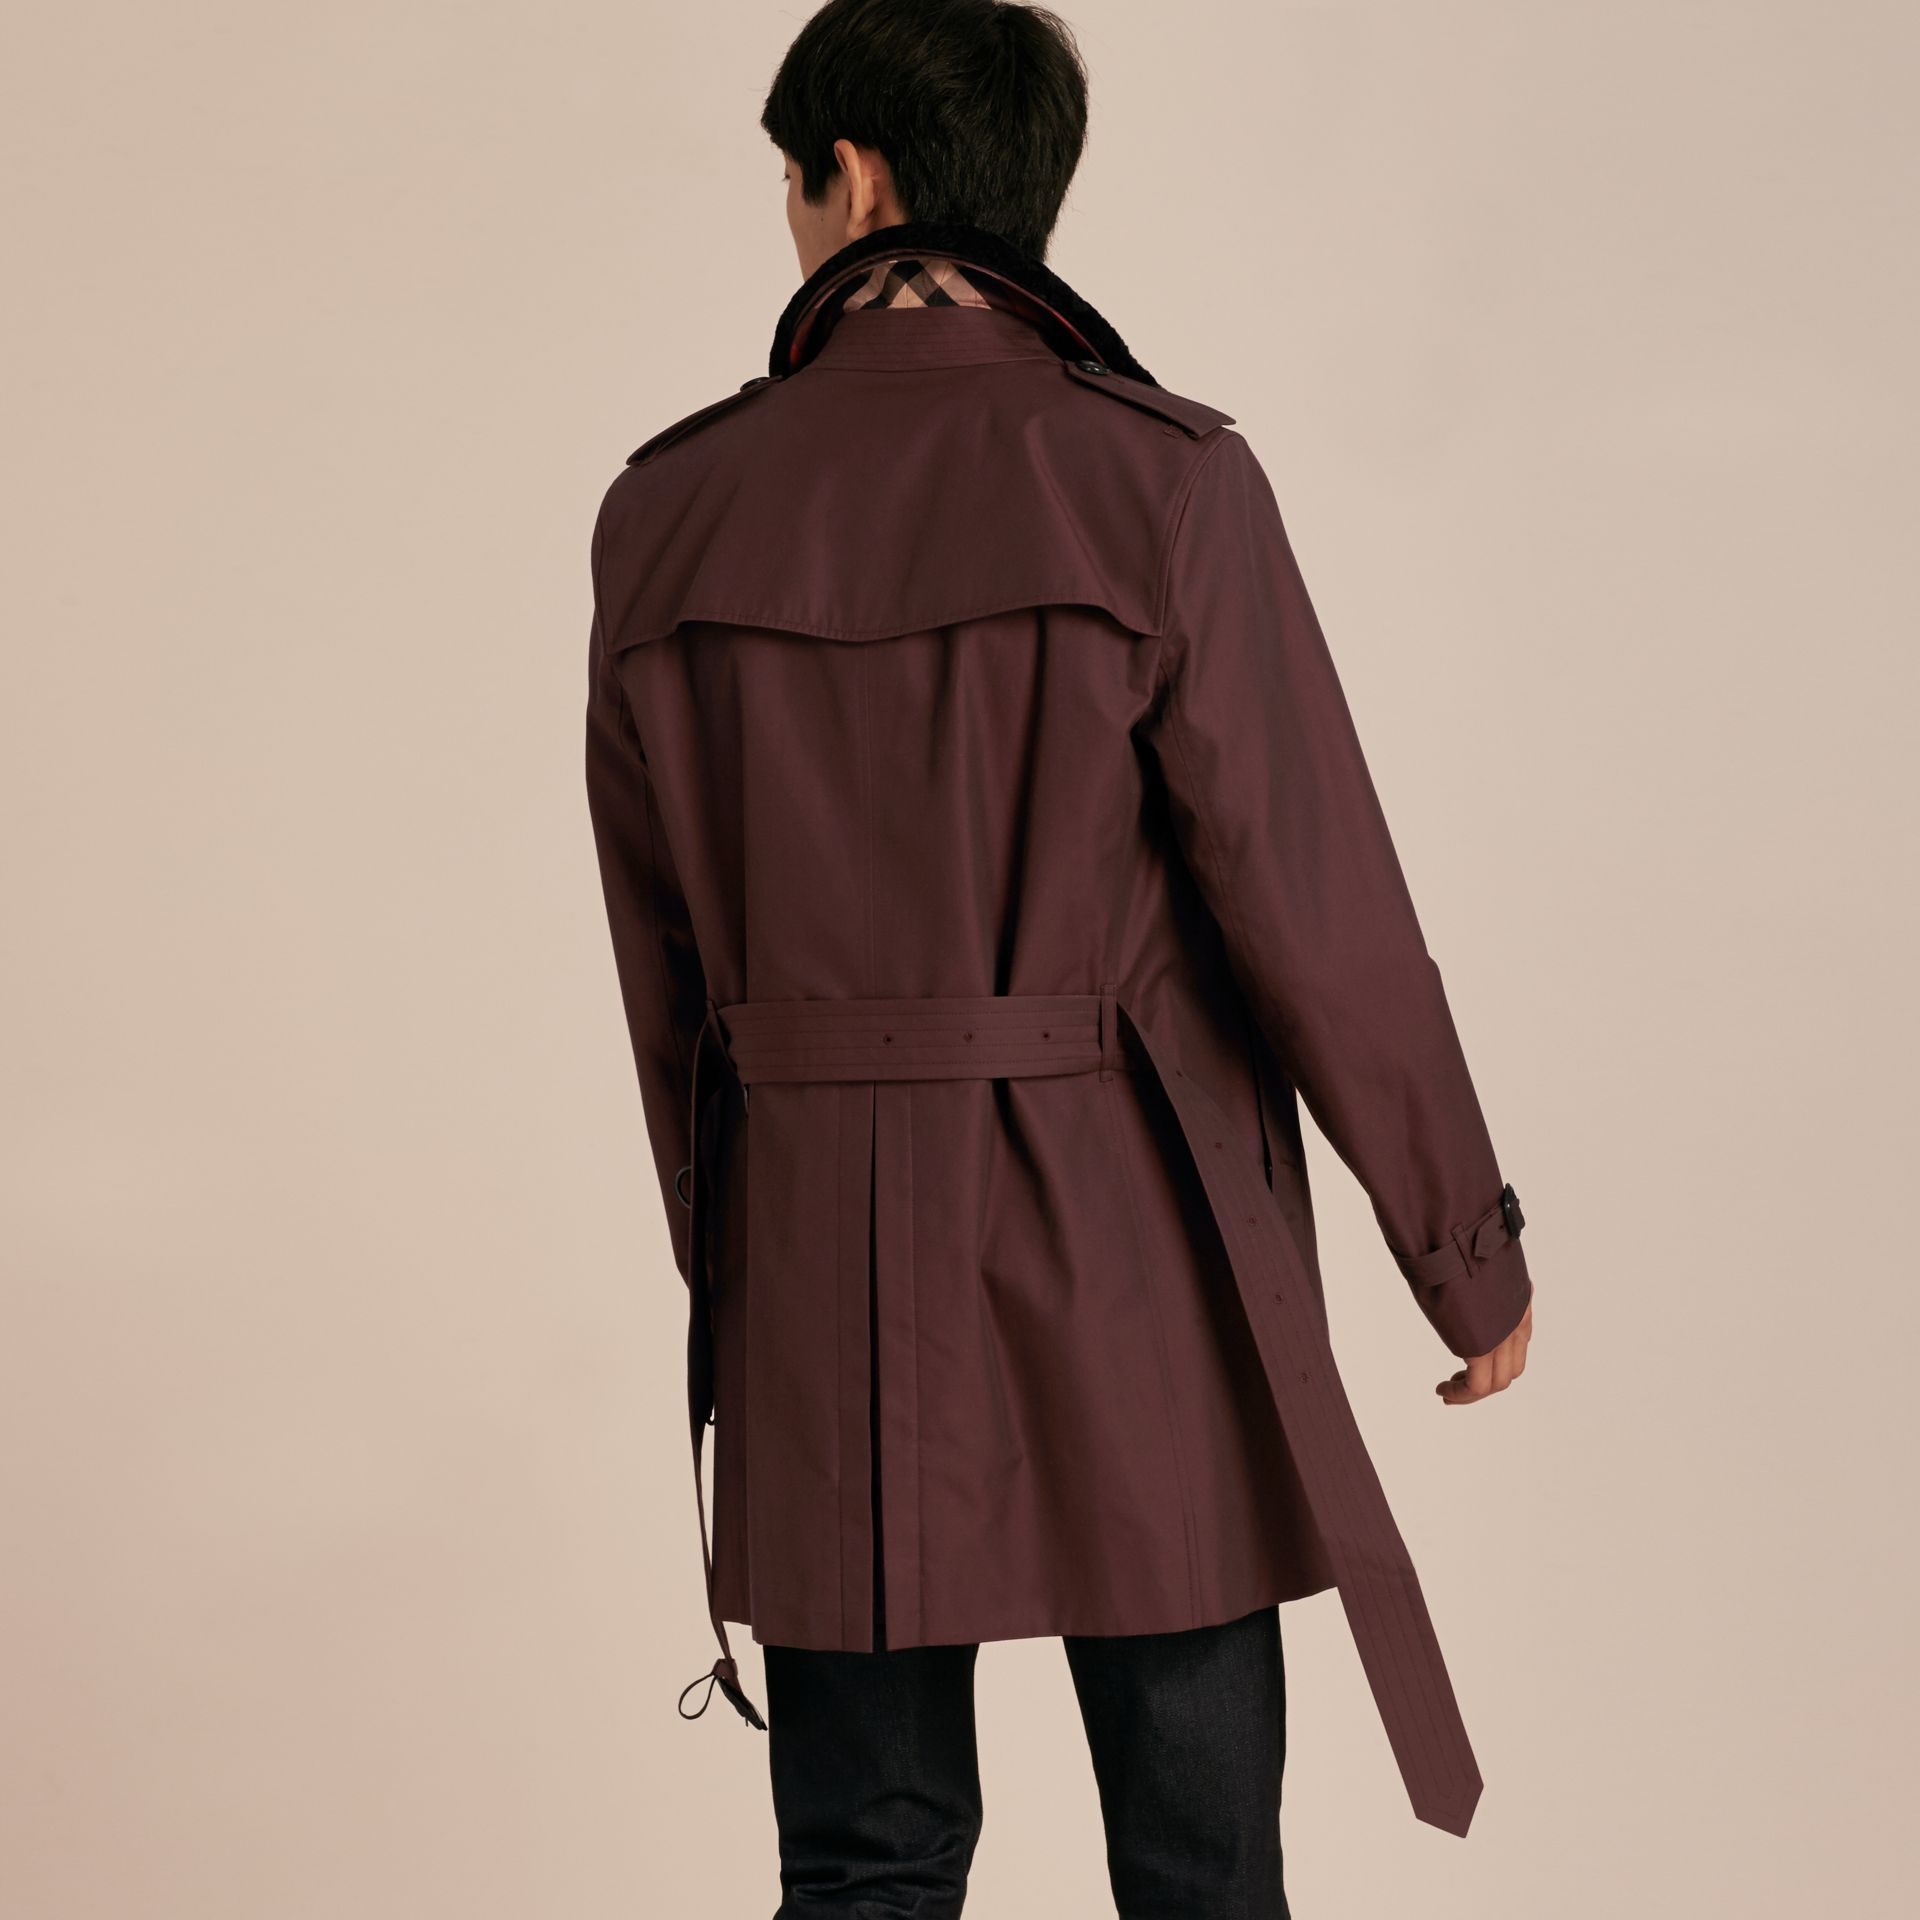 Mahogany red Detachable Shearling Topcollar Cotton Gabardine Trench Coat with Warmer Mahogany Red - gallery image 3